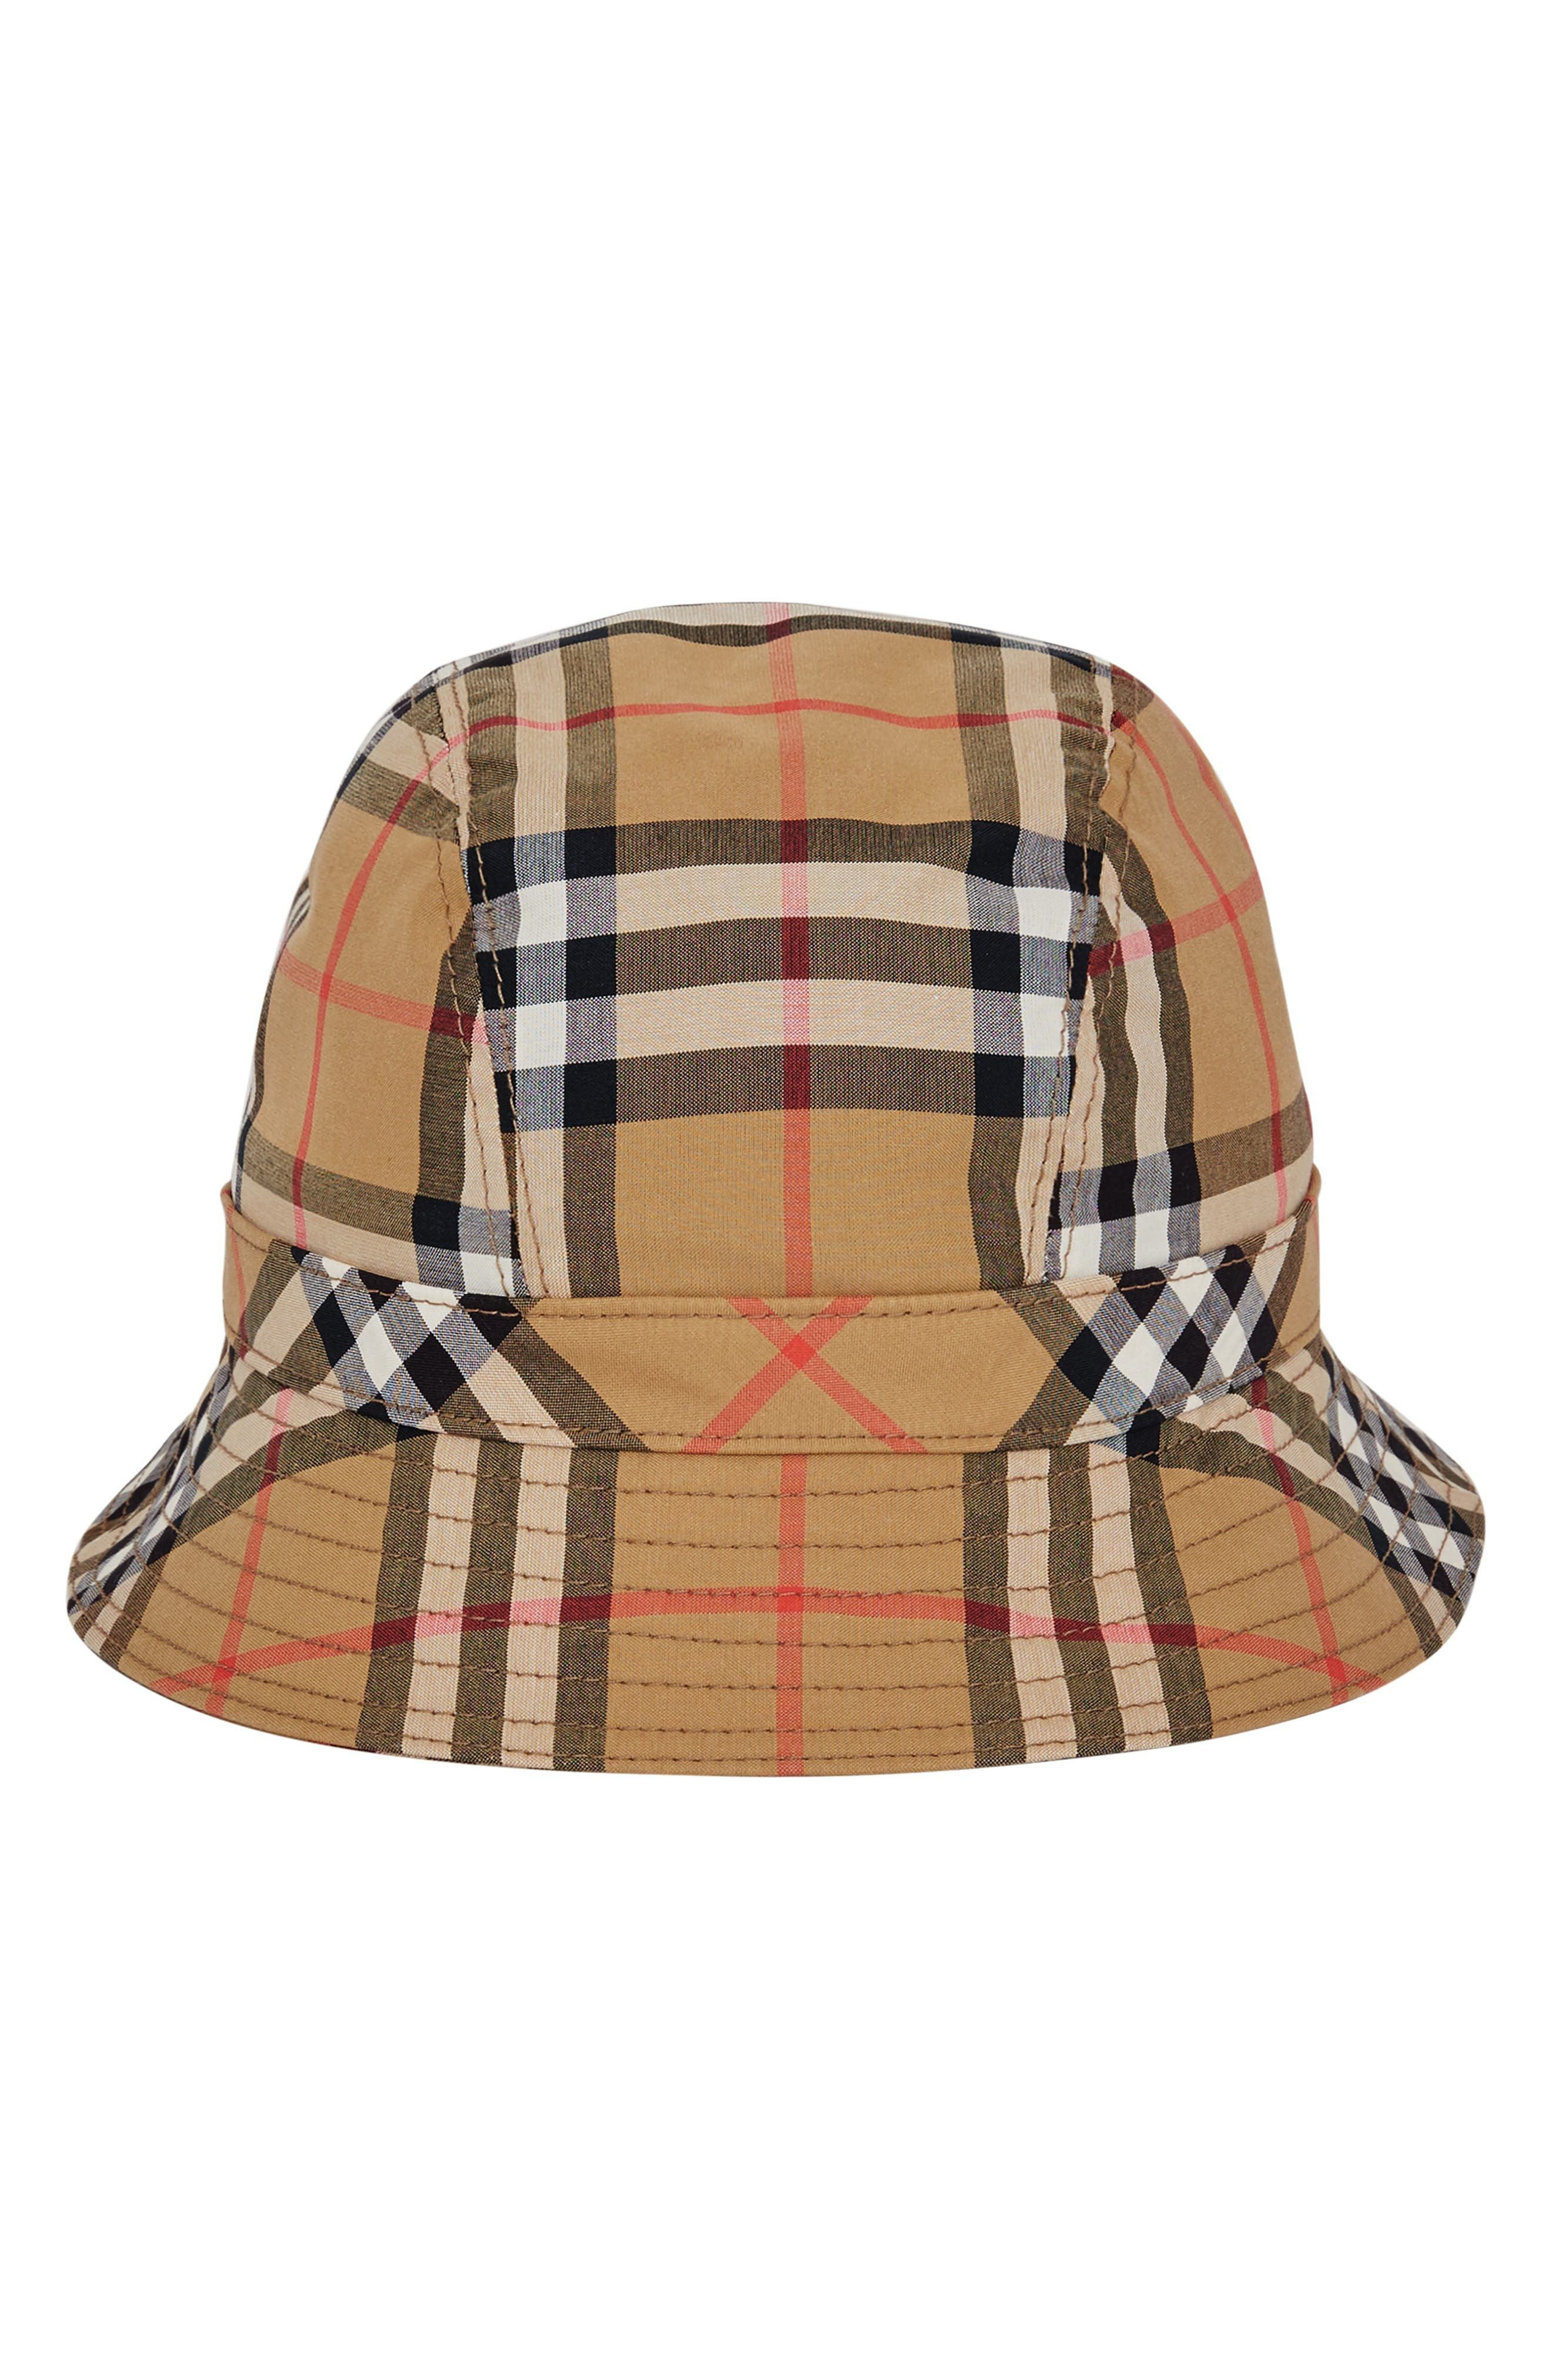 Rainbow Stripe Vintage Check Bucket Hat,                             Alternate thumbnail 2, color,                             ANTIQUE YELLOW/ RAINBOW